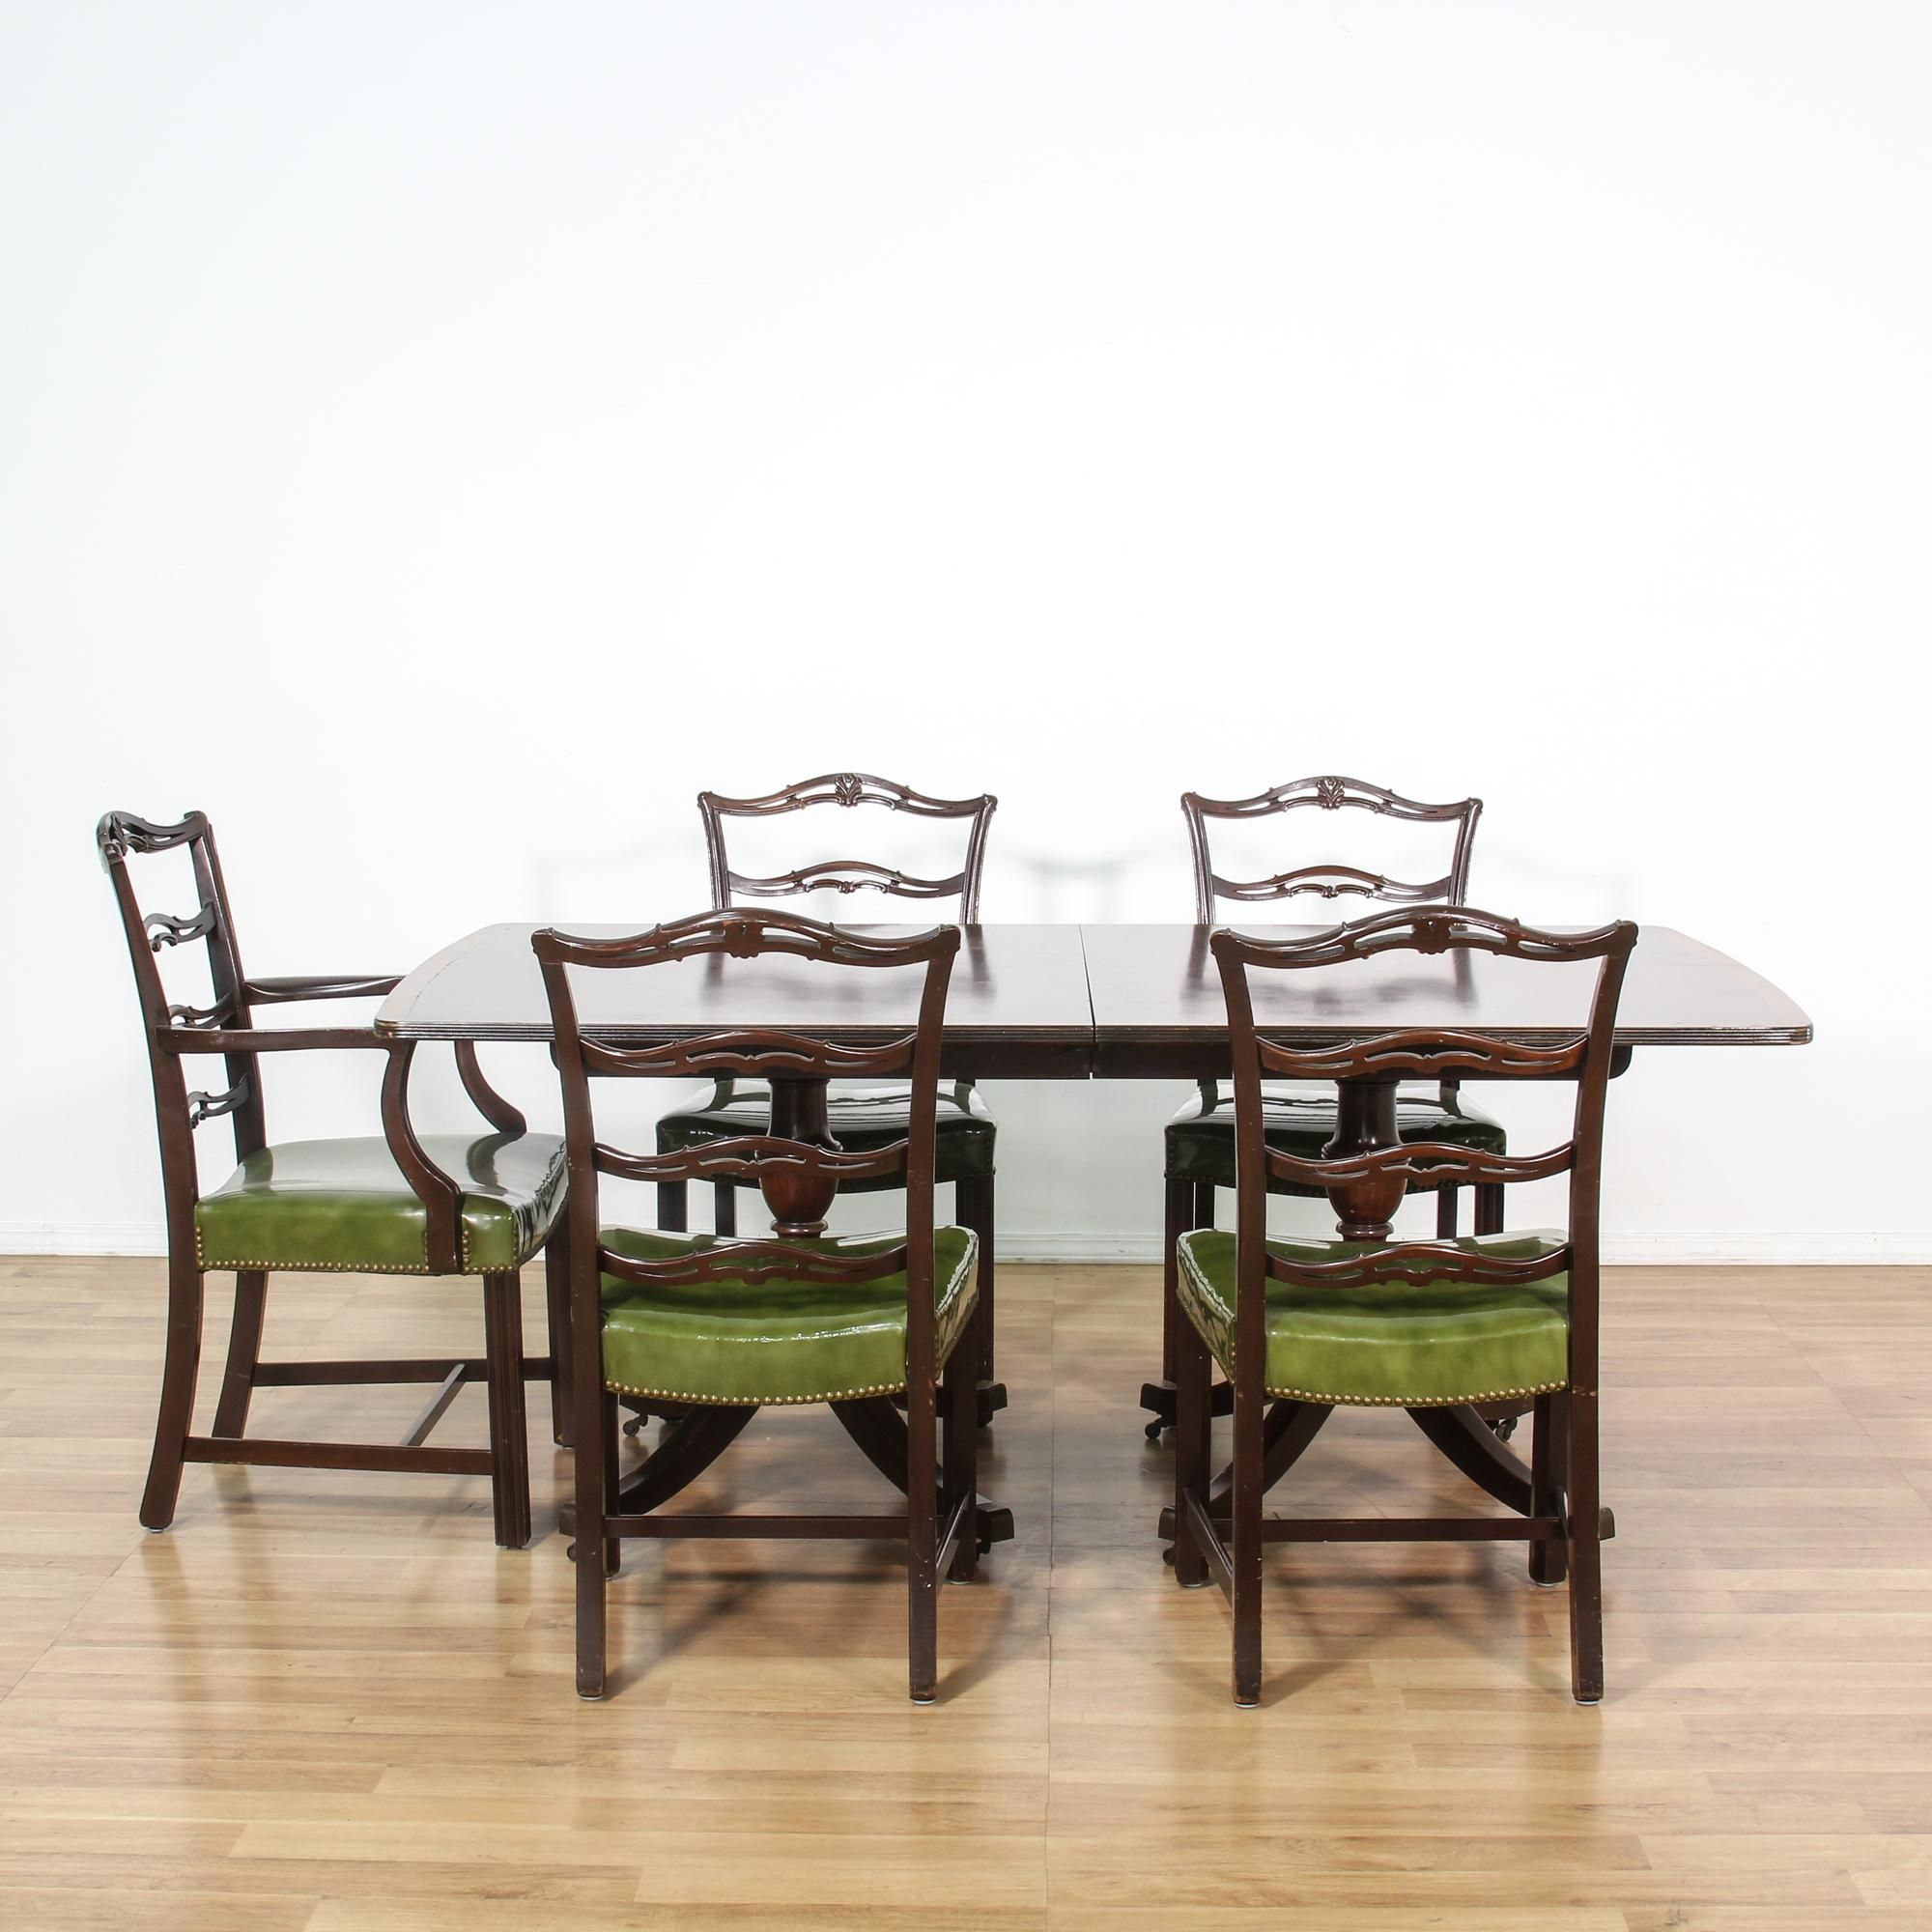 This Duncan Phyfe dining set is featured in a solid wood with a glossy mahogany finish. This traditional style table and set of chairs have green vinyl upholstery, studded nailhead trim, and box stretchers. Gorgeous set that's perfect for casual or formal dining! #americantraditional #tables #diningset #sandiegovintage #vintagefurniture